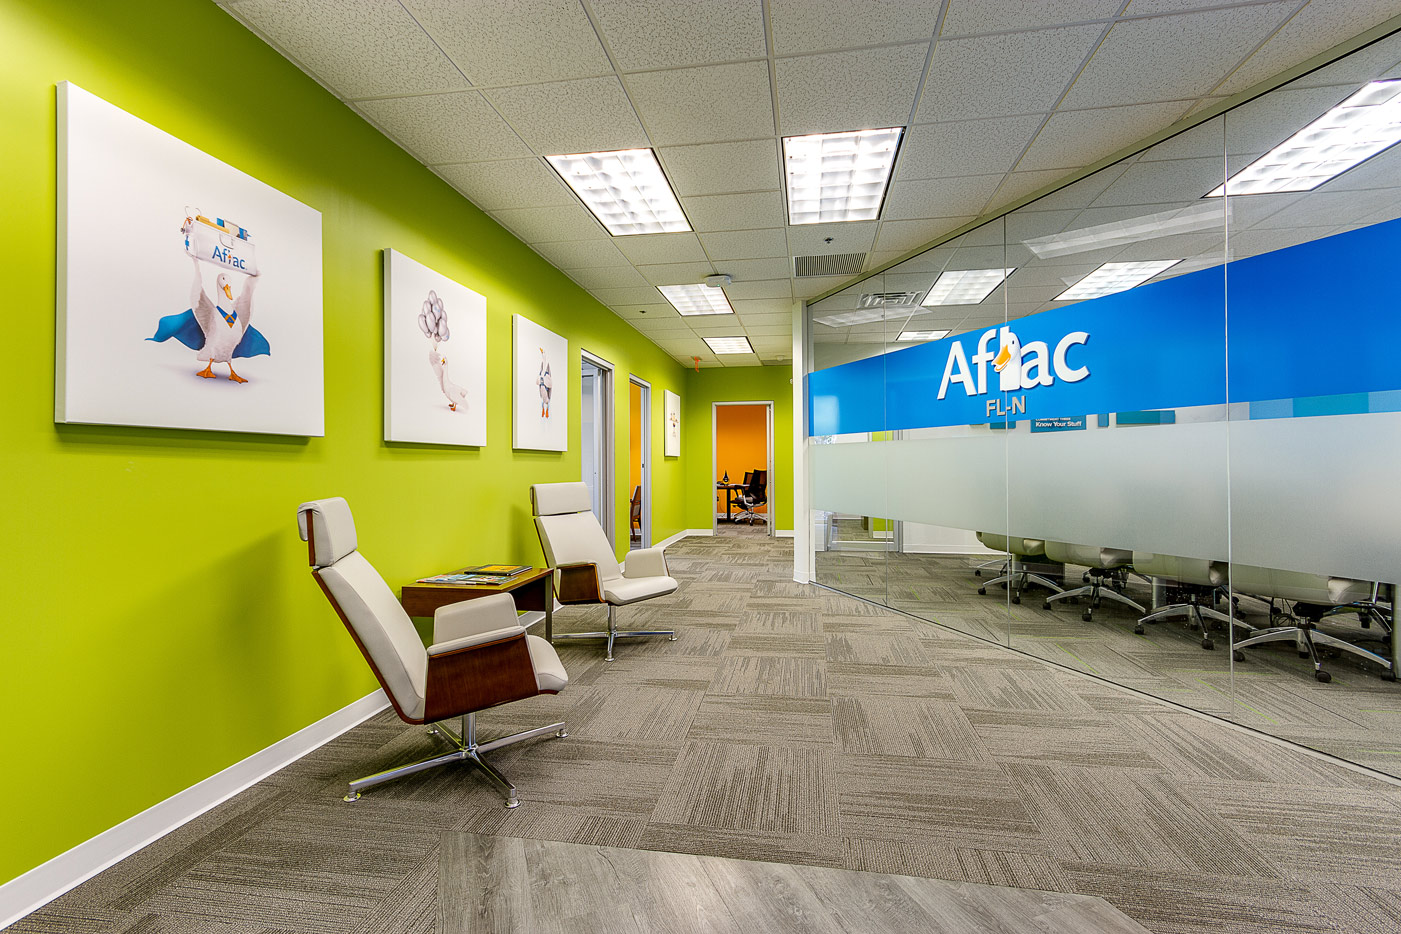 Aflac entryway with chair and logo